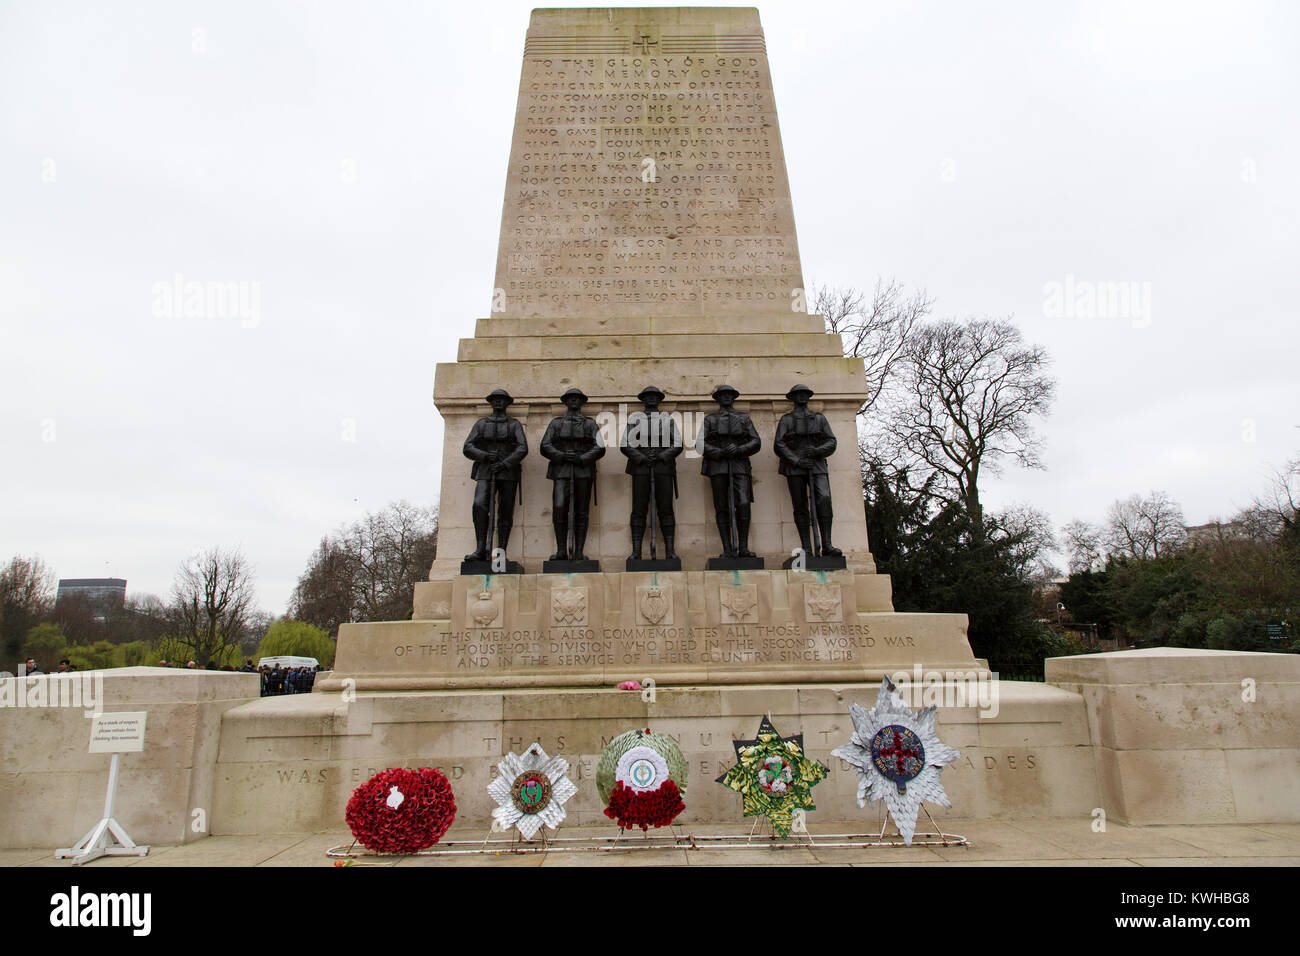 The Guards Division War Memorial at St James's Park in London, England. The cenotaph style memorial was designed - Stock Image